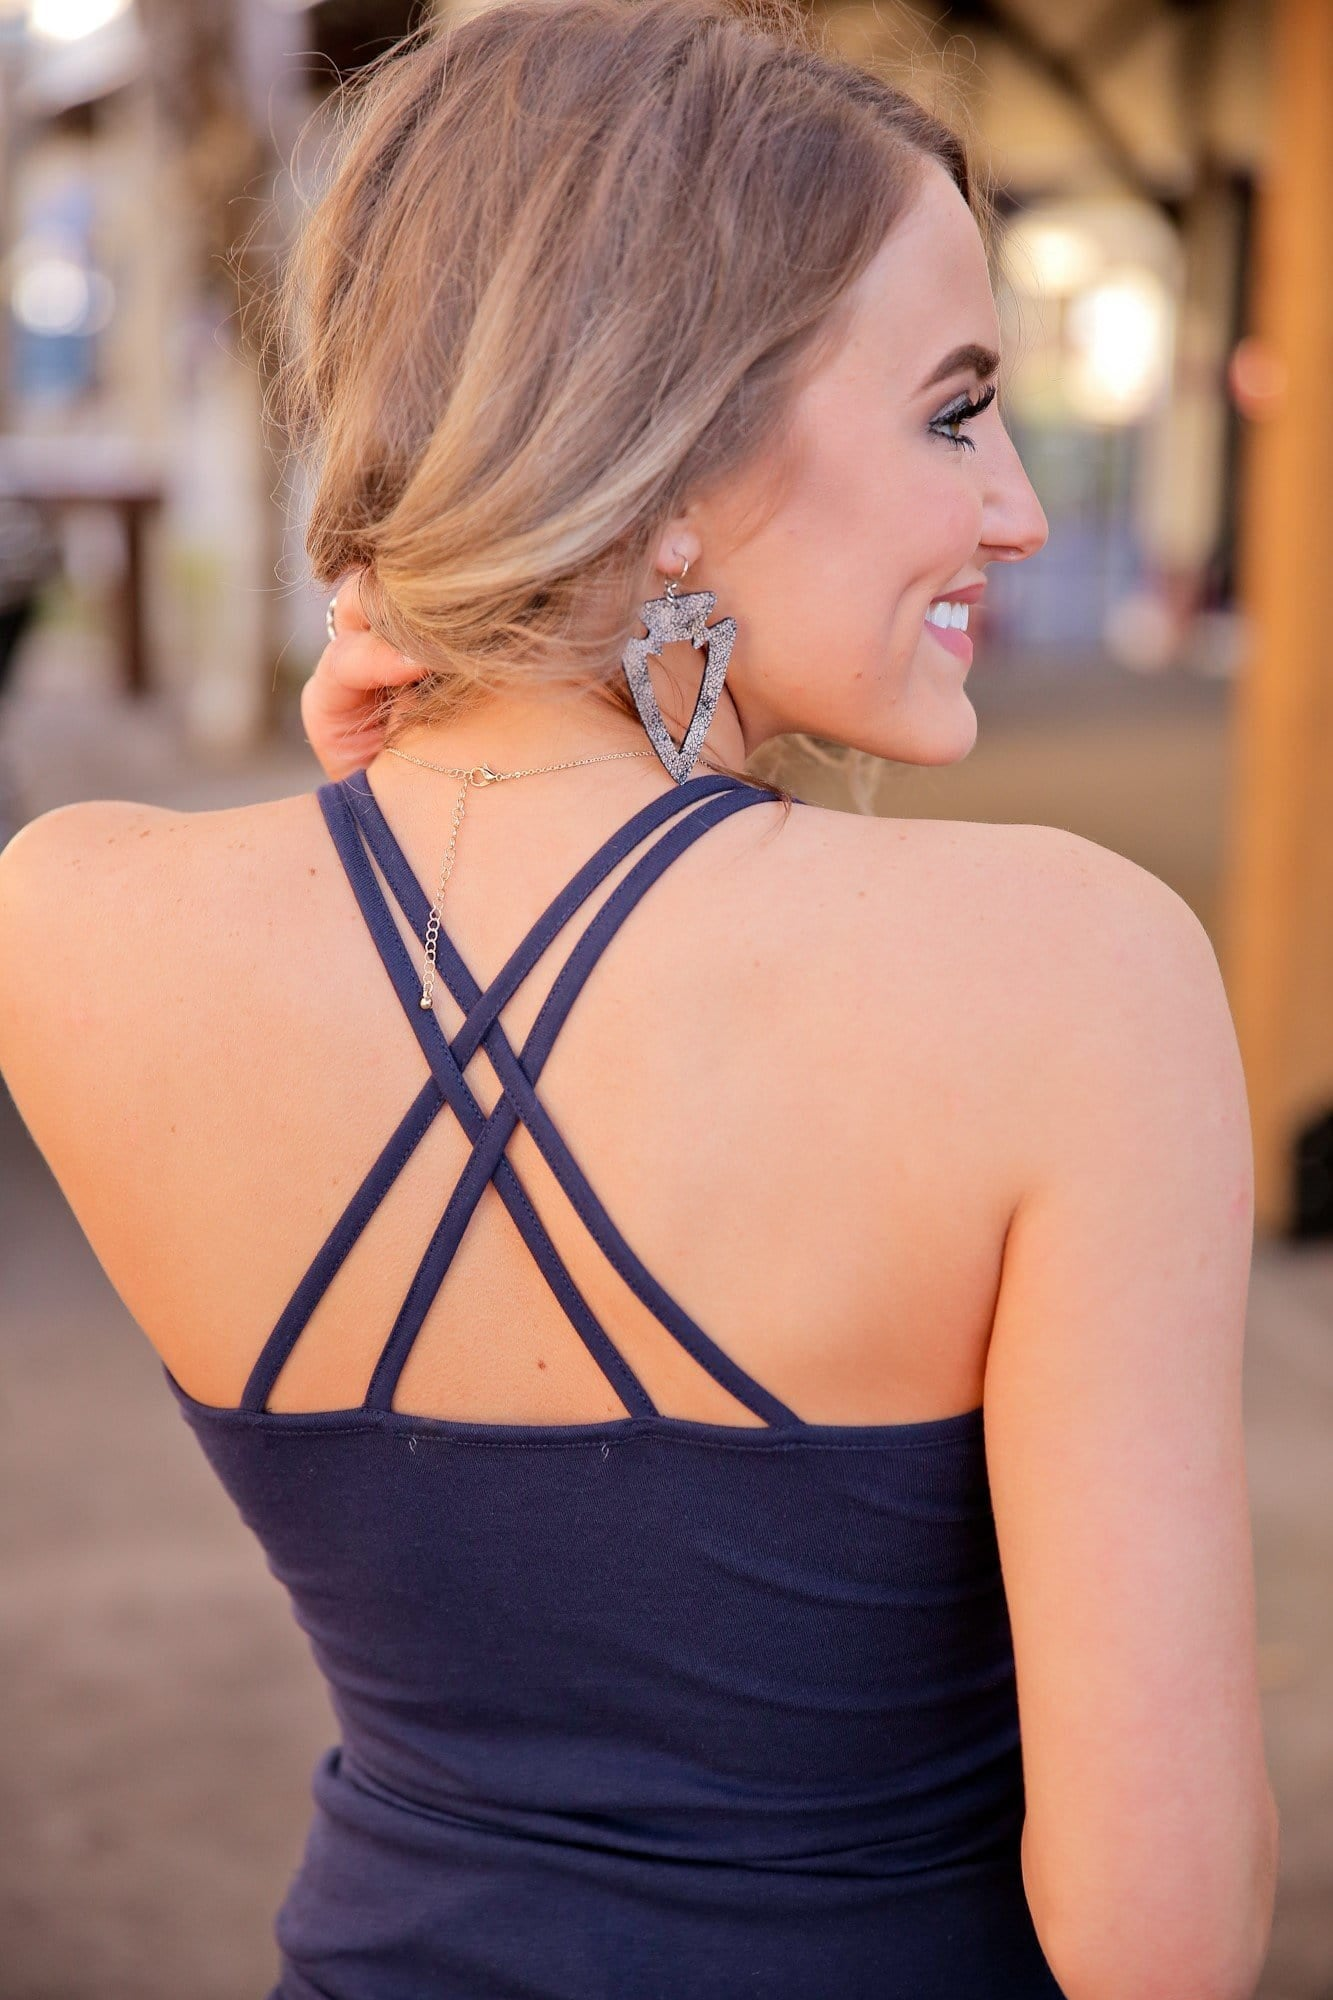 THE BASIC CAMI V-NECK W/DOUBLE CROSS STRAP TOP-NAVY - Infinity Raine